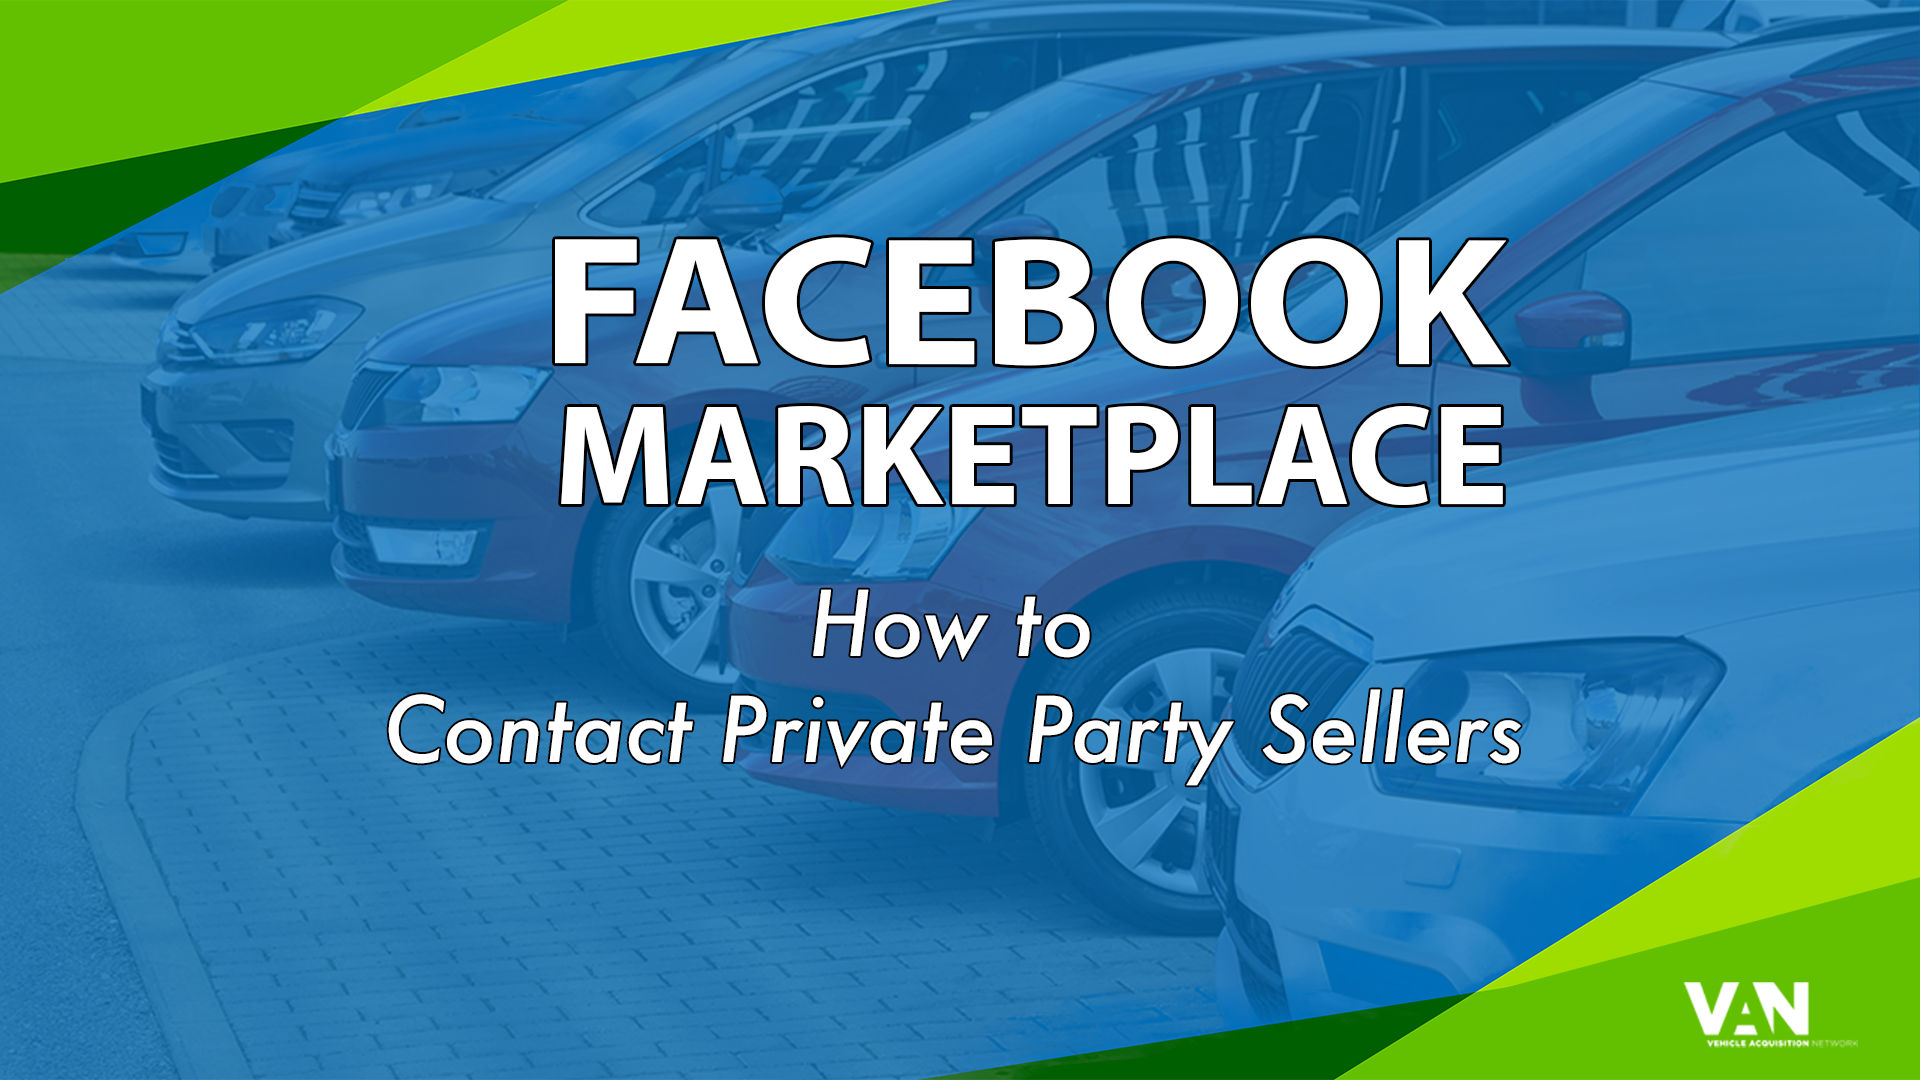 How to contact private party sellers on Facebook